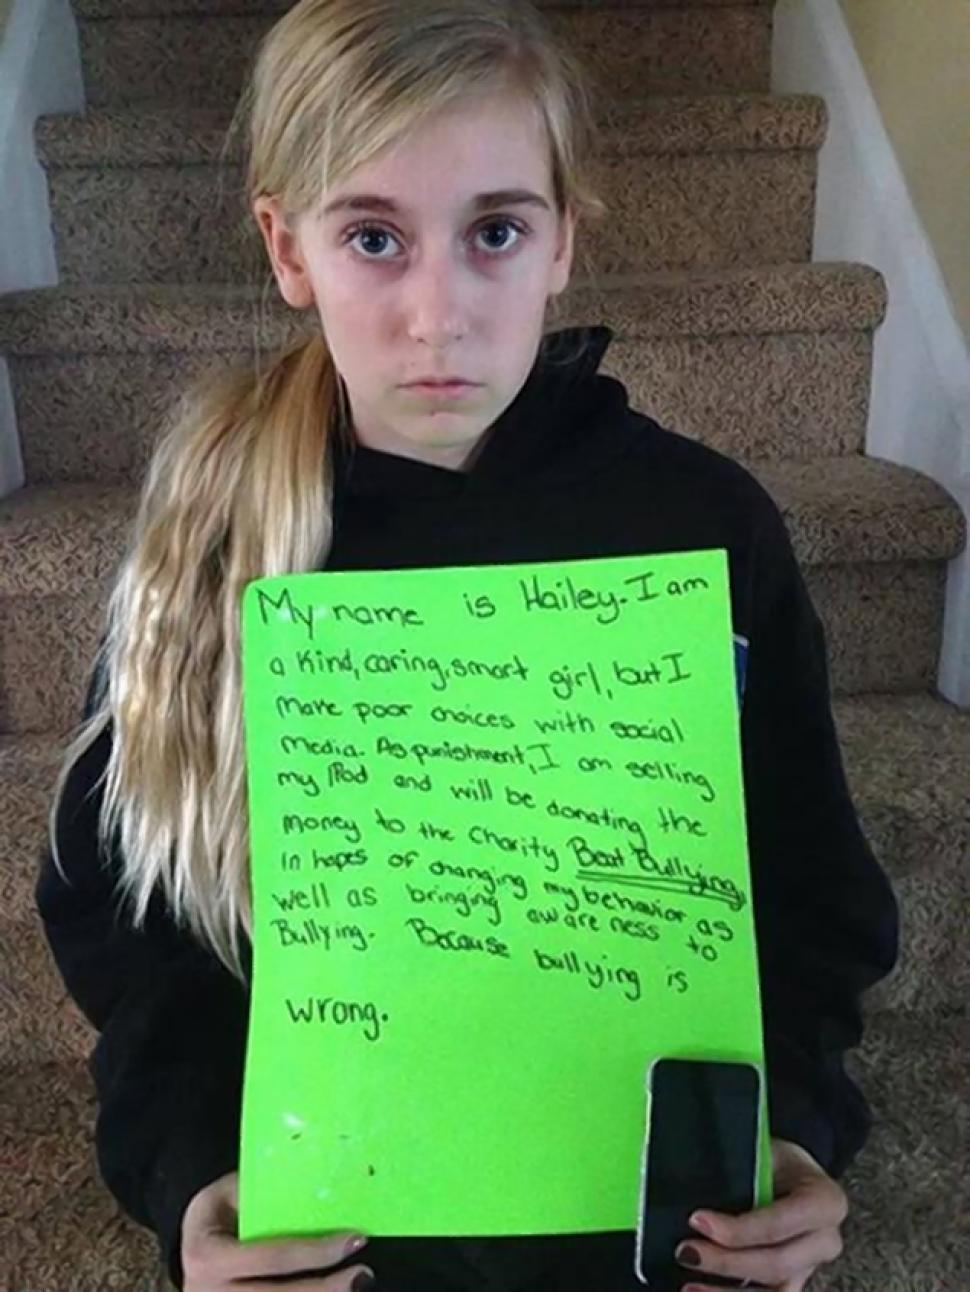 Young Hailey was forced to write an apology, sell her iPod and donate the money to charity after her mom caught her cyberbullying.